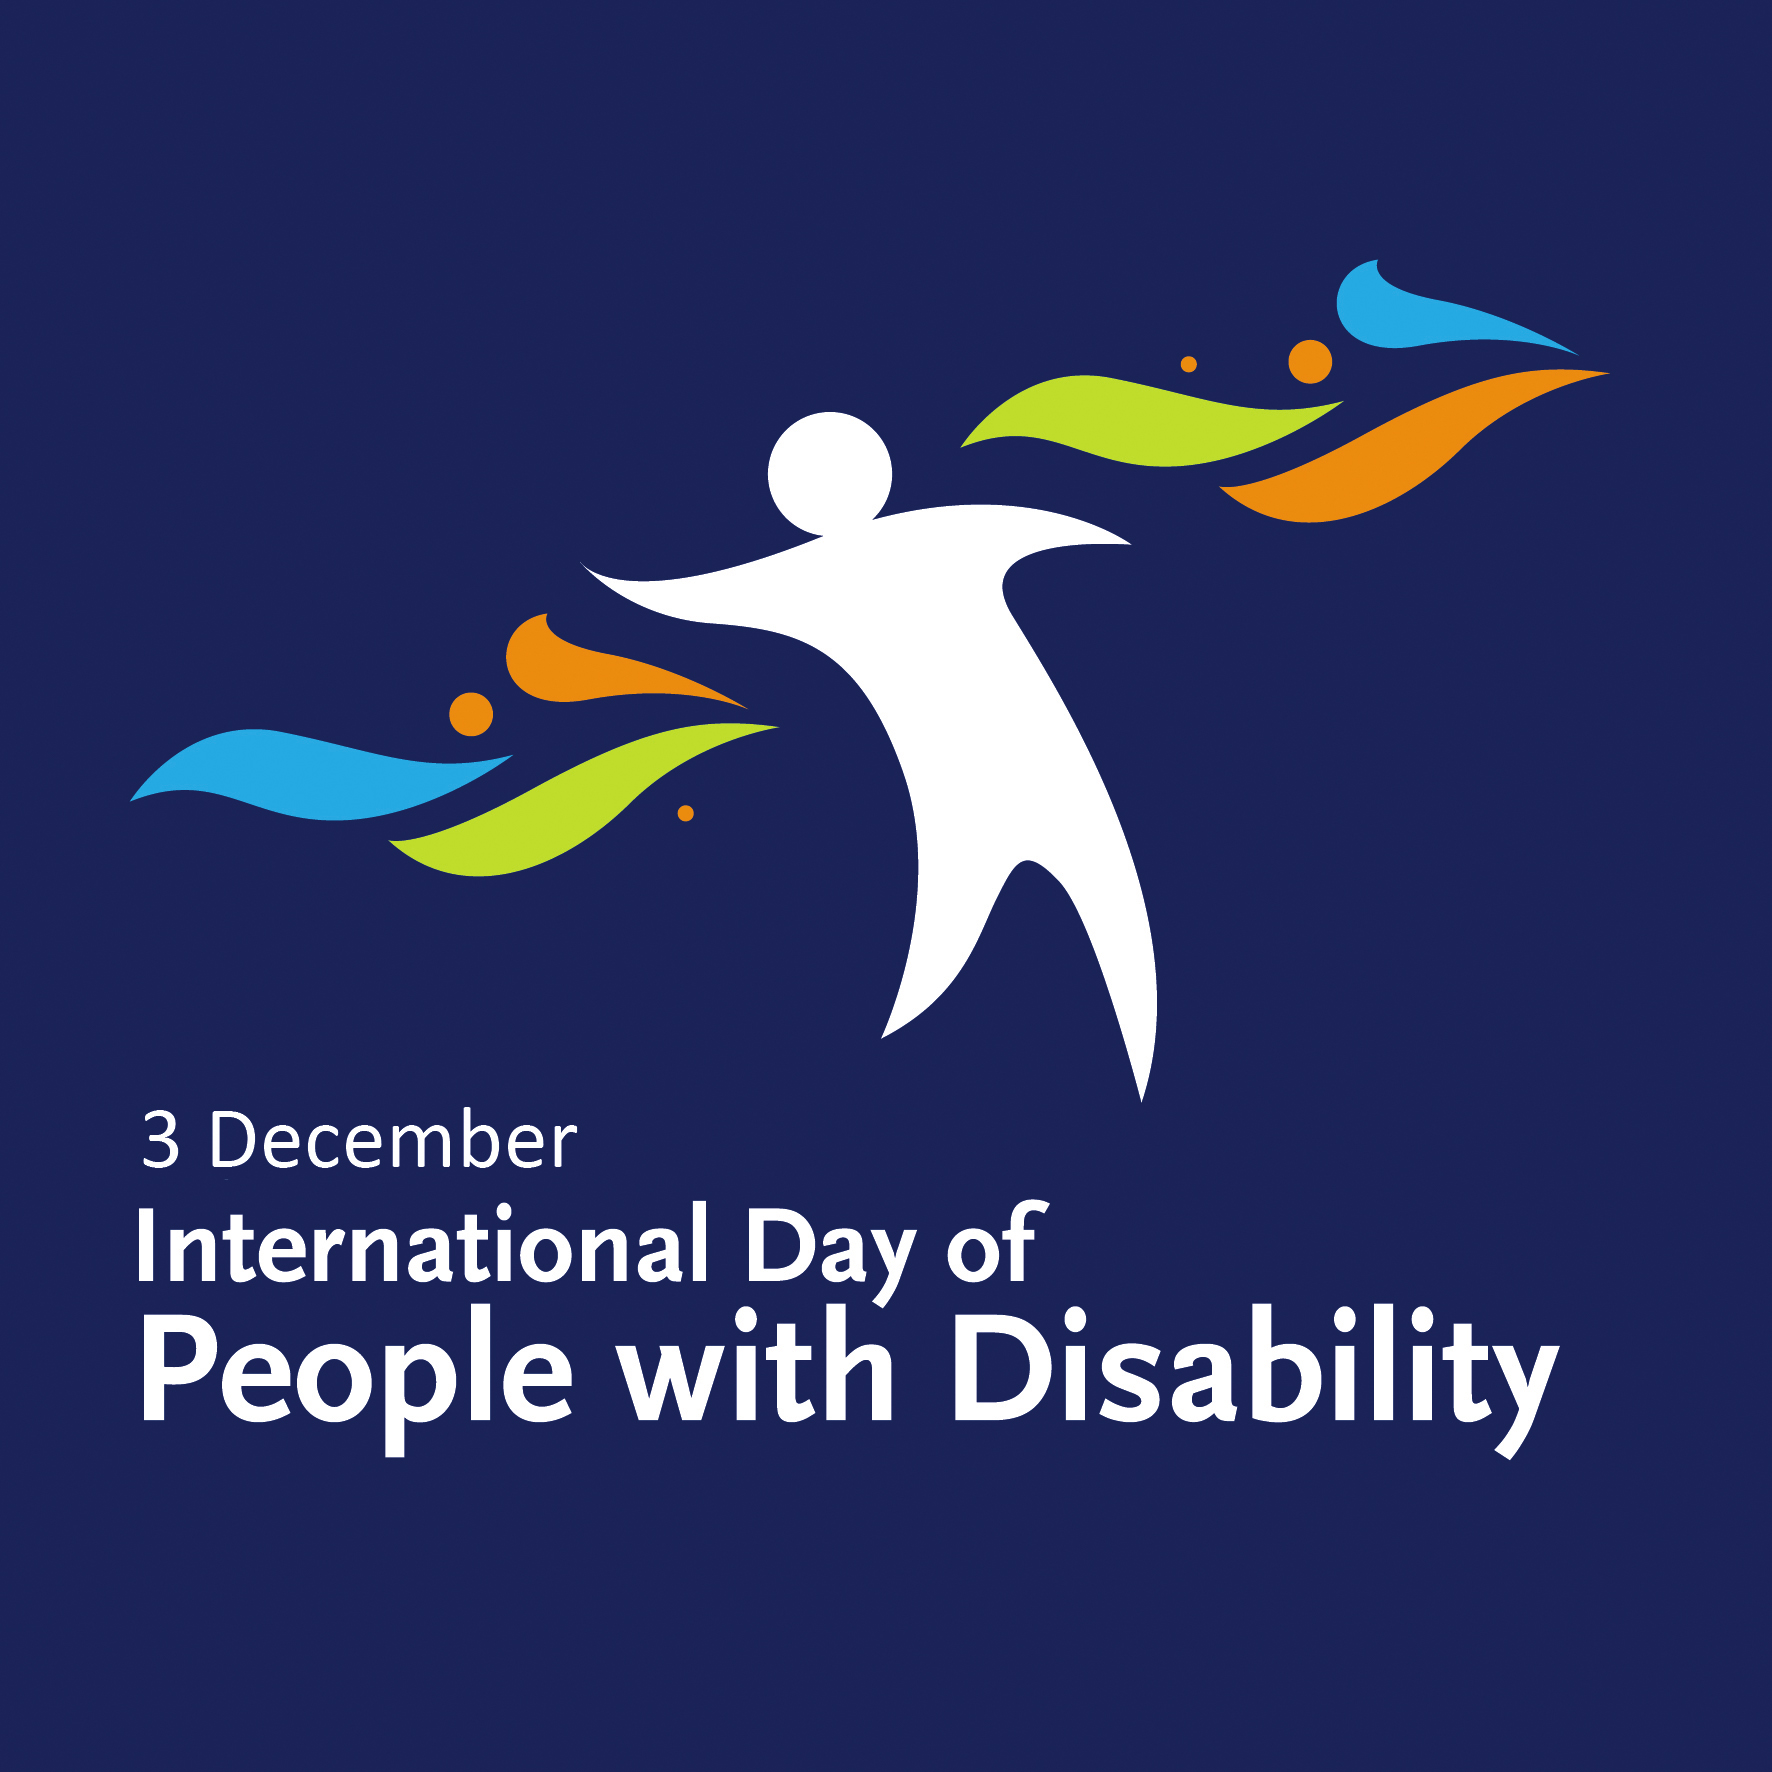 International Day of People with Disability supported by APM logo